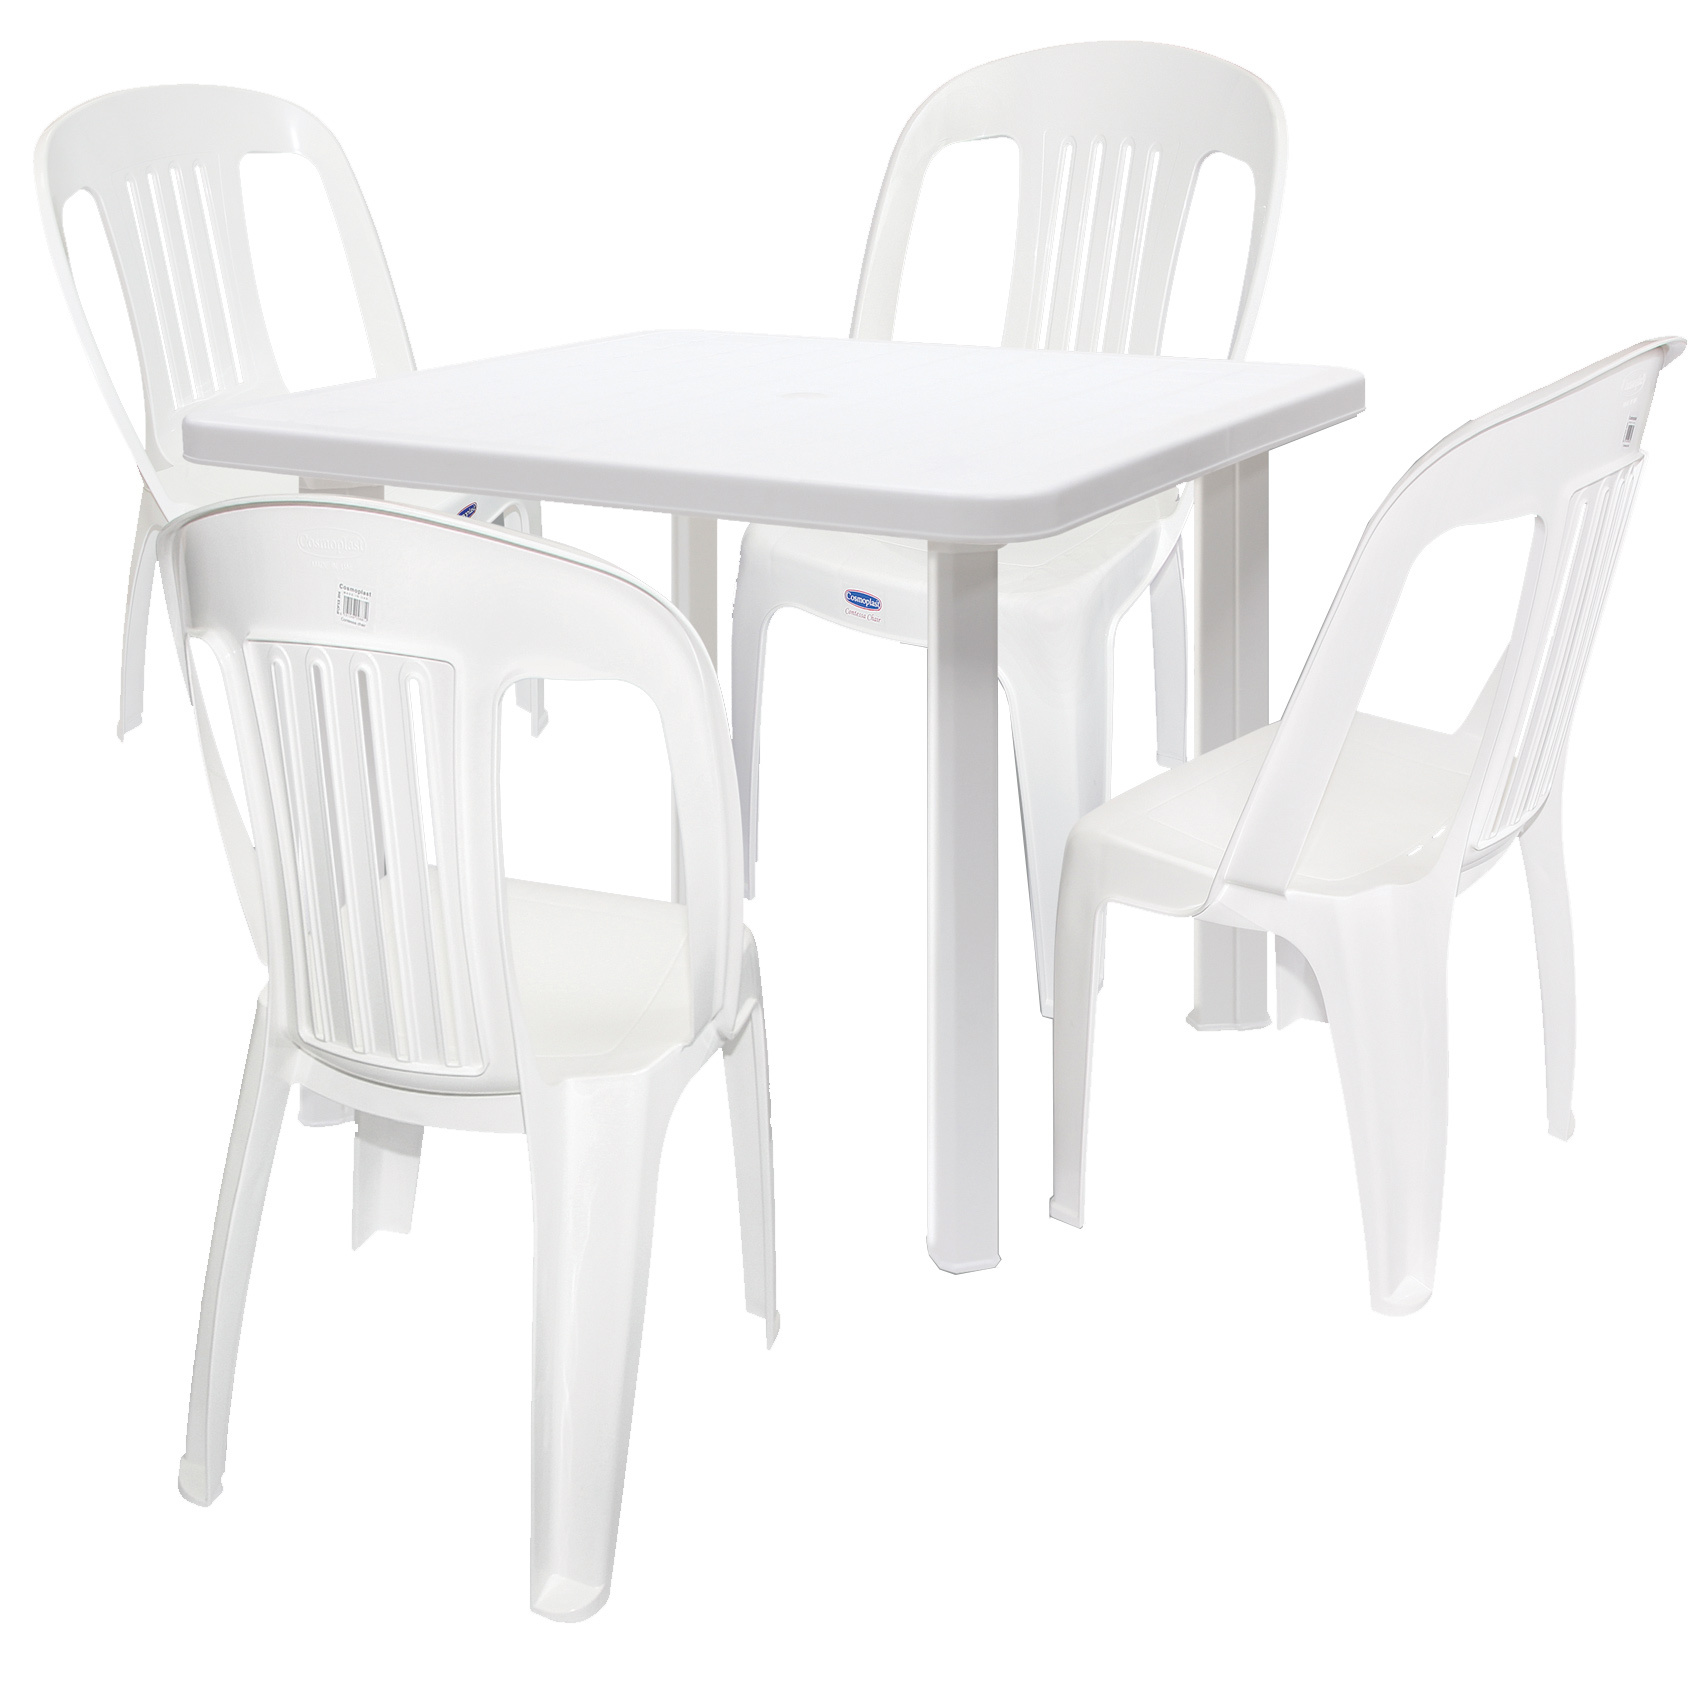 Buy Cosmo Square Set Table 4 Chairs Online In Uae Carrefour Outdoor Products Backpack Abu Cosmoplast